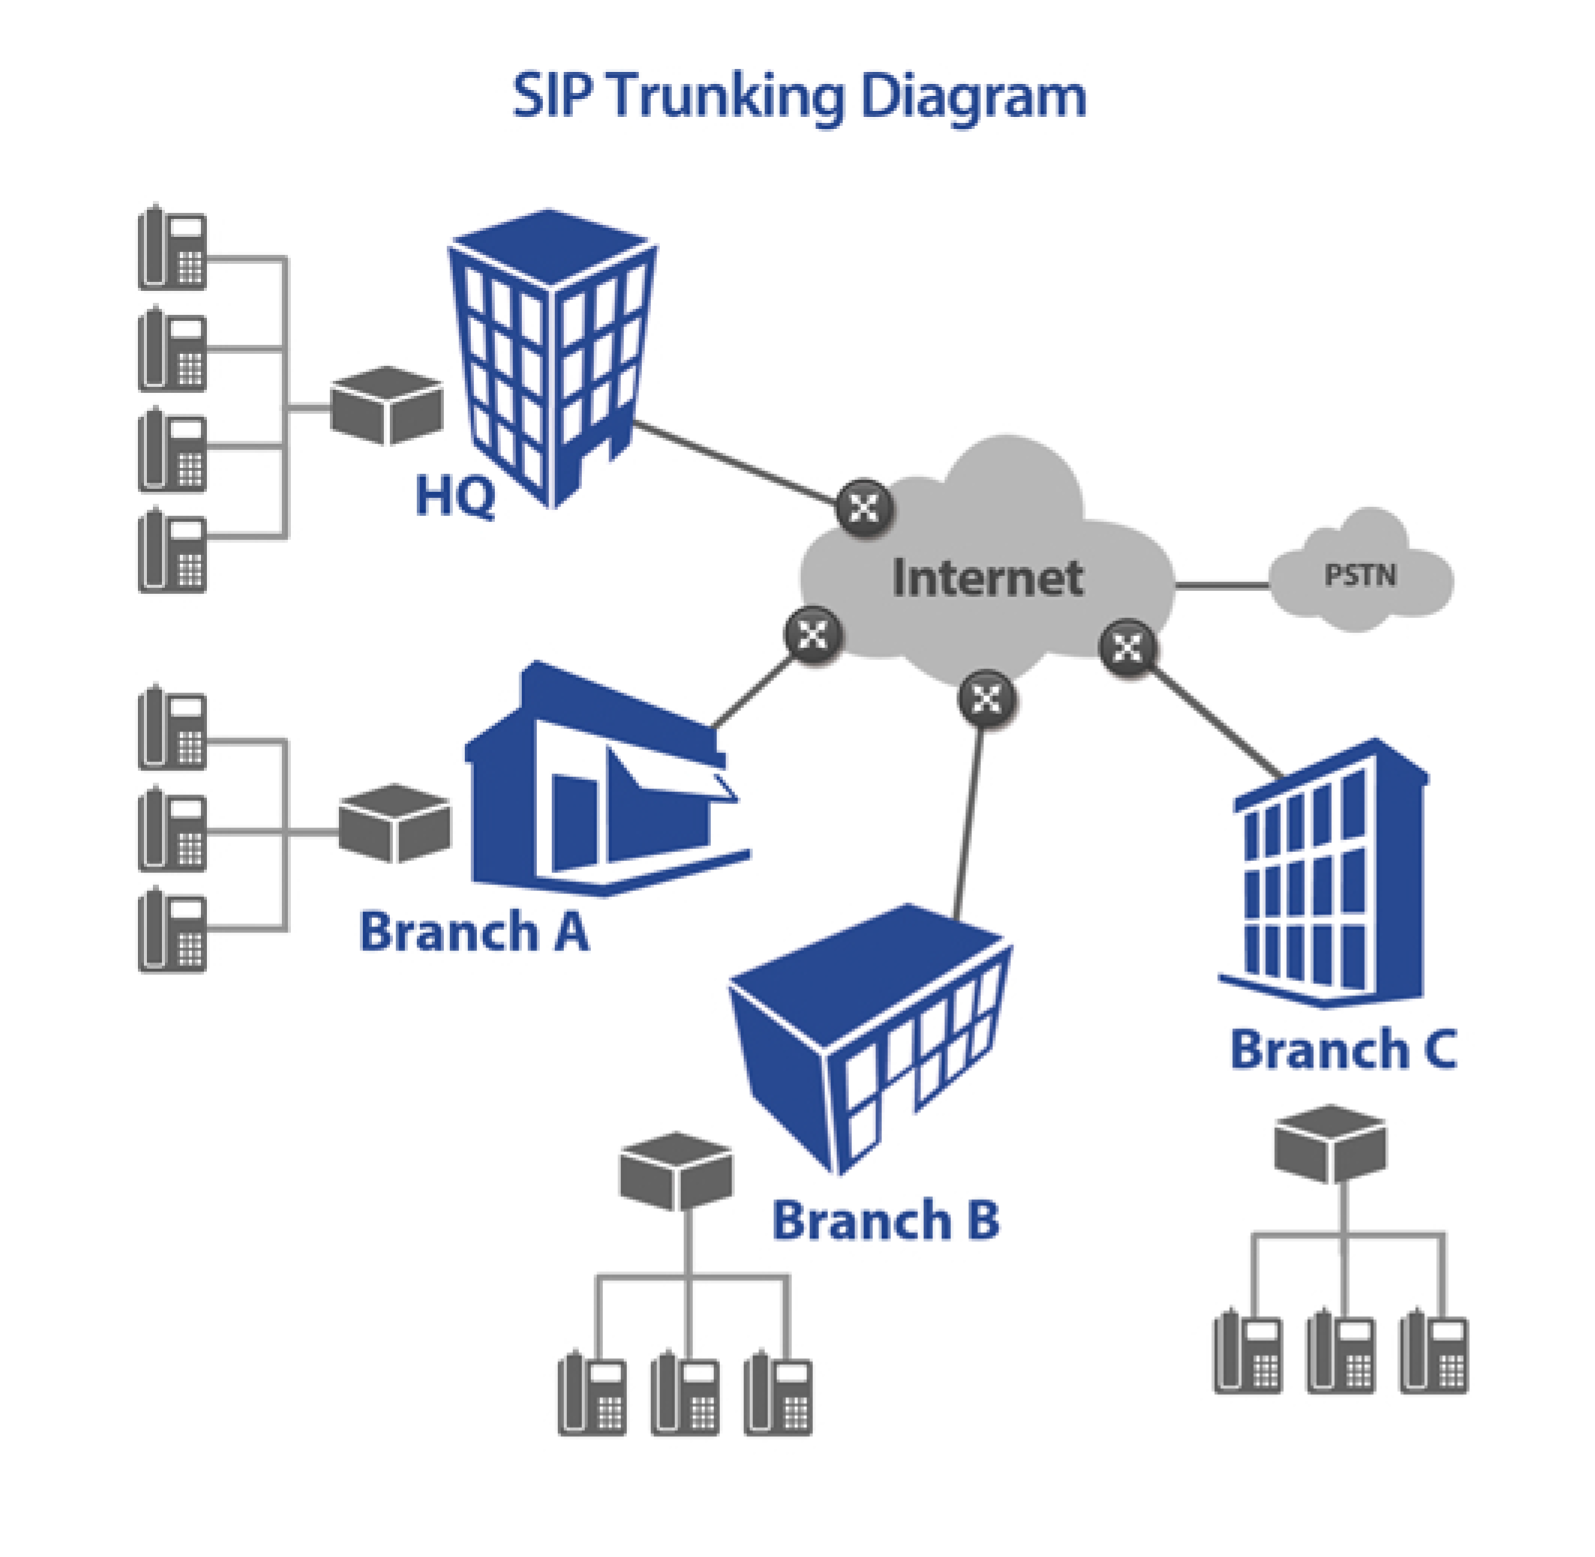 V1 VoIP offers wholesalers and resellers SIP trunking services and solutions for business